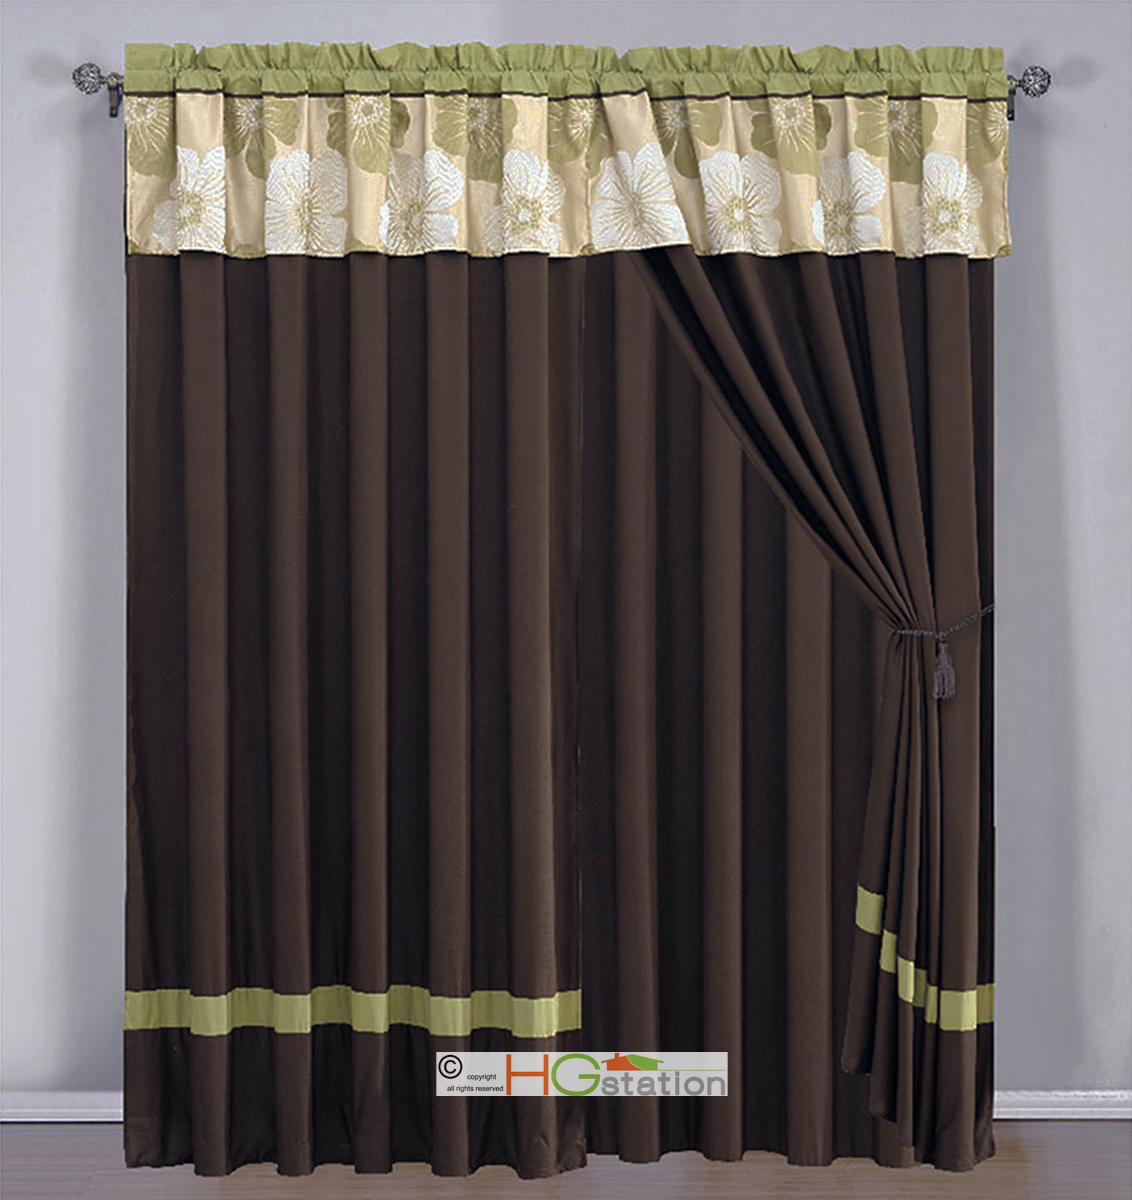 4p Jacquard Flower Striped Curtain Set Sage Green Brown Gold Beige Valance Drape Ebay